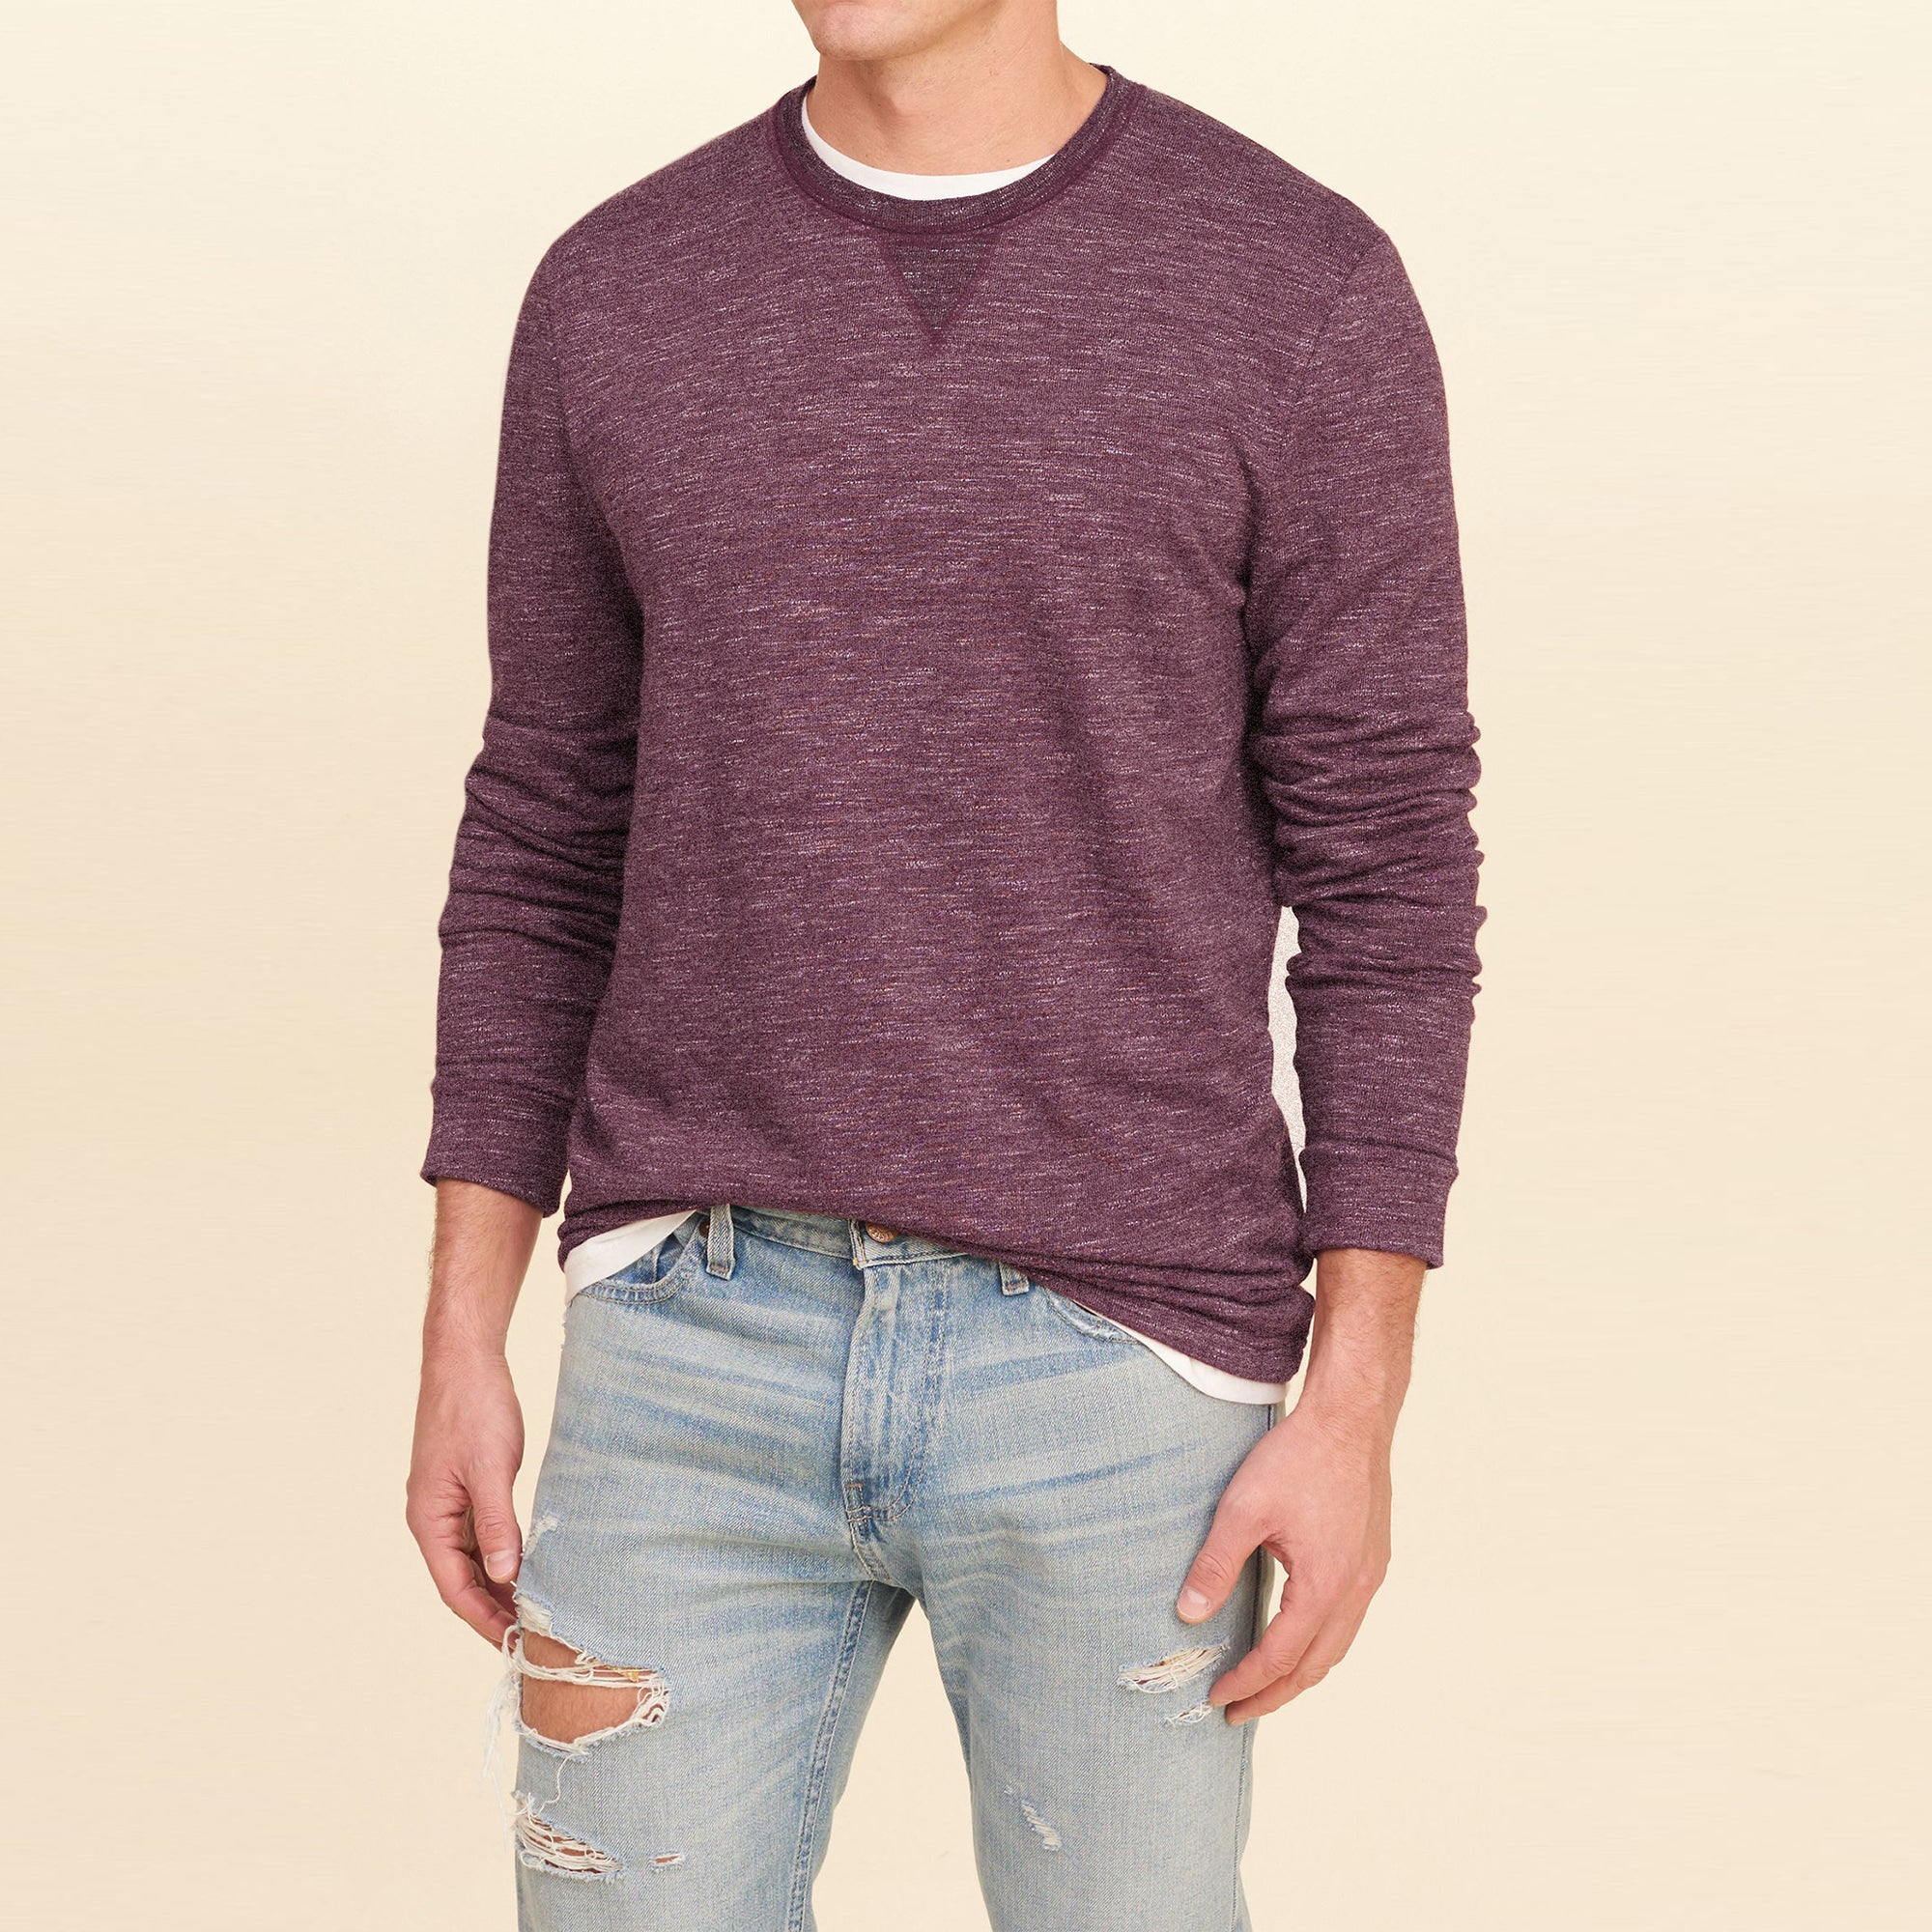 7c9f366f Beverly Hills Single Jersey Long Sleeve Tee Shirt For Men-BE8135 ...